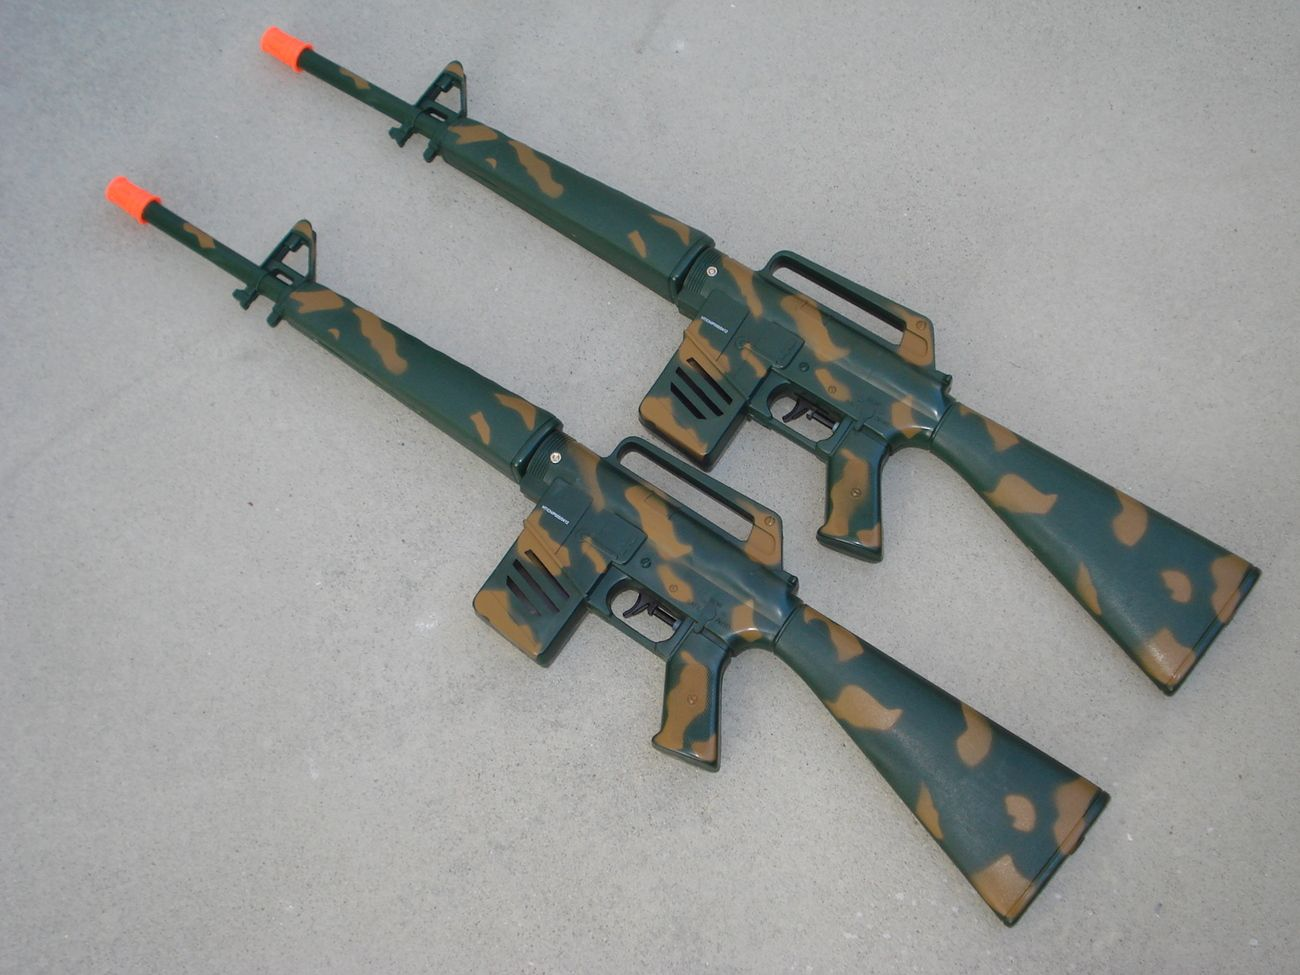 Two m16 water rifles water guns camouflage realistic gun sounds free water balloons from